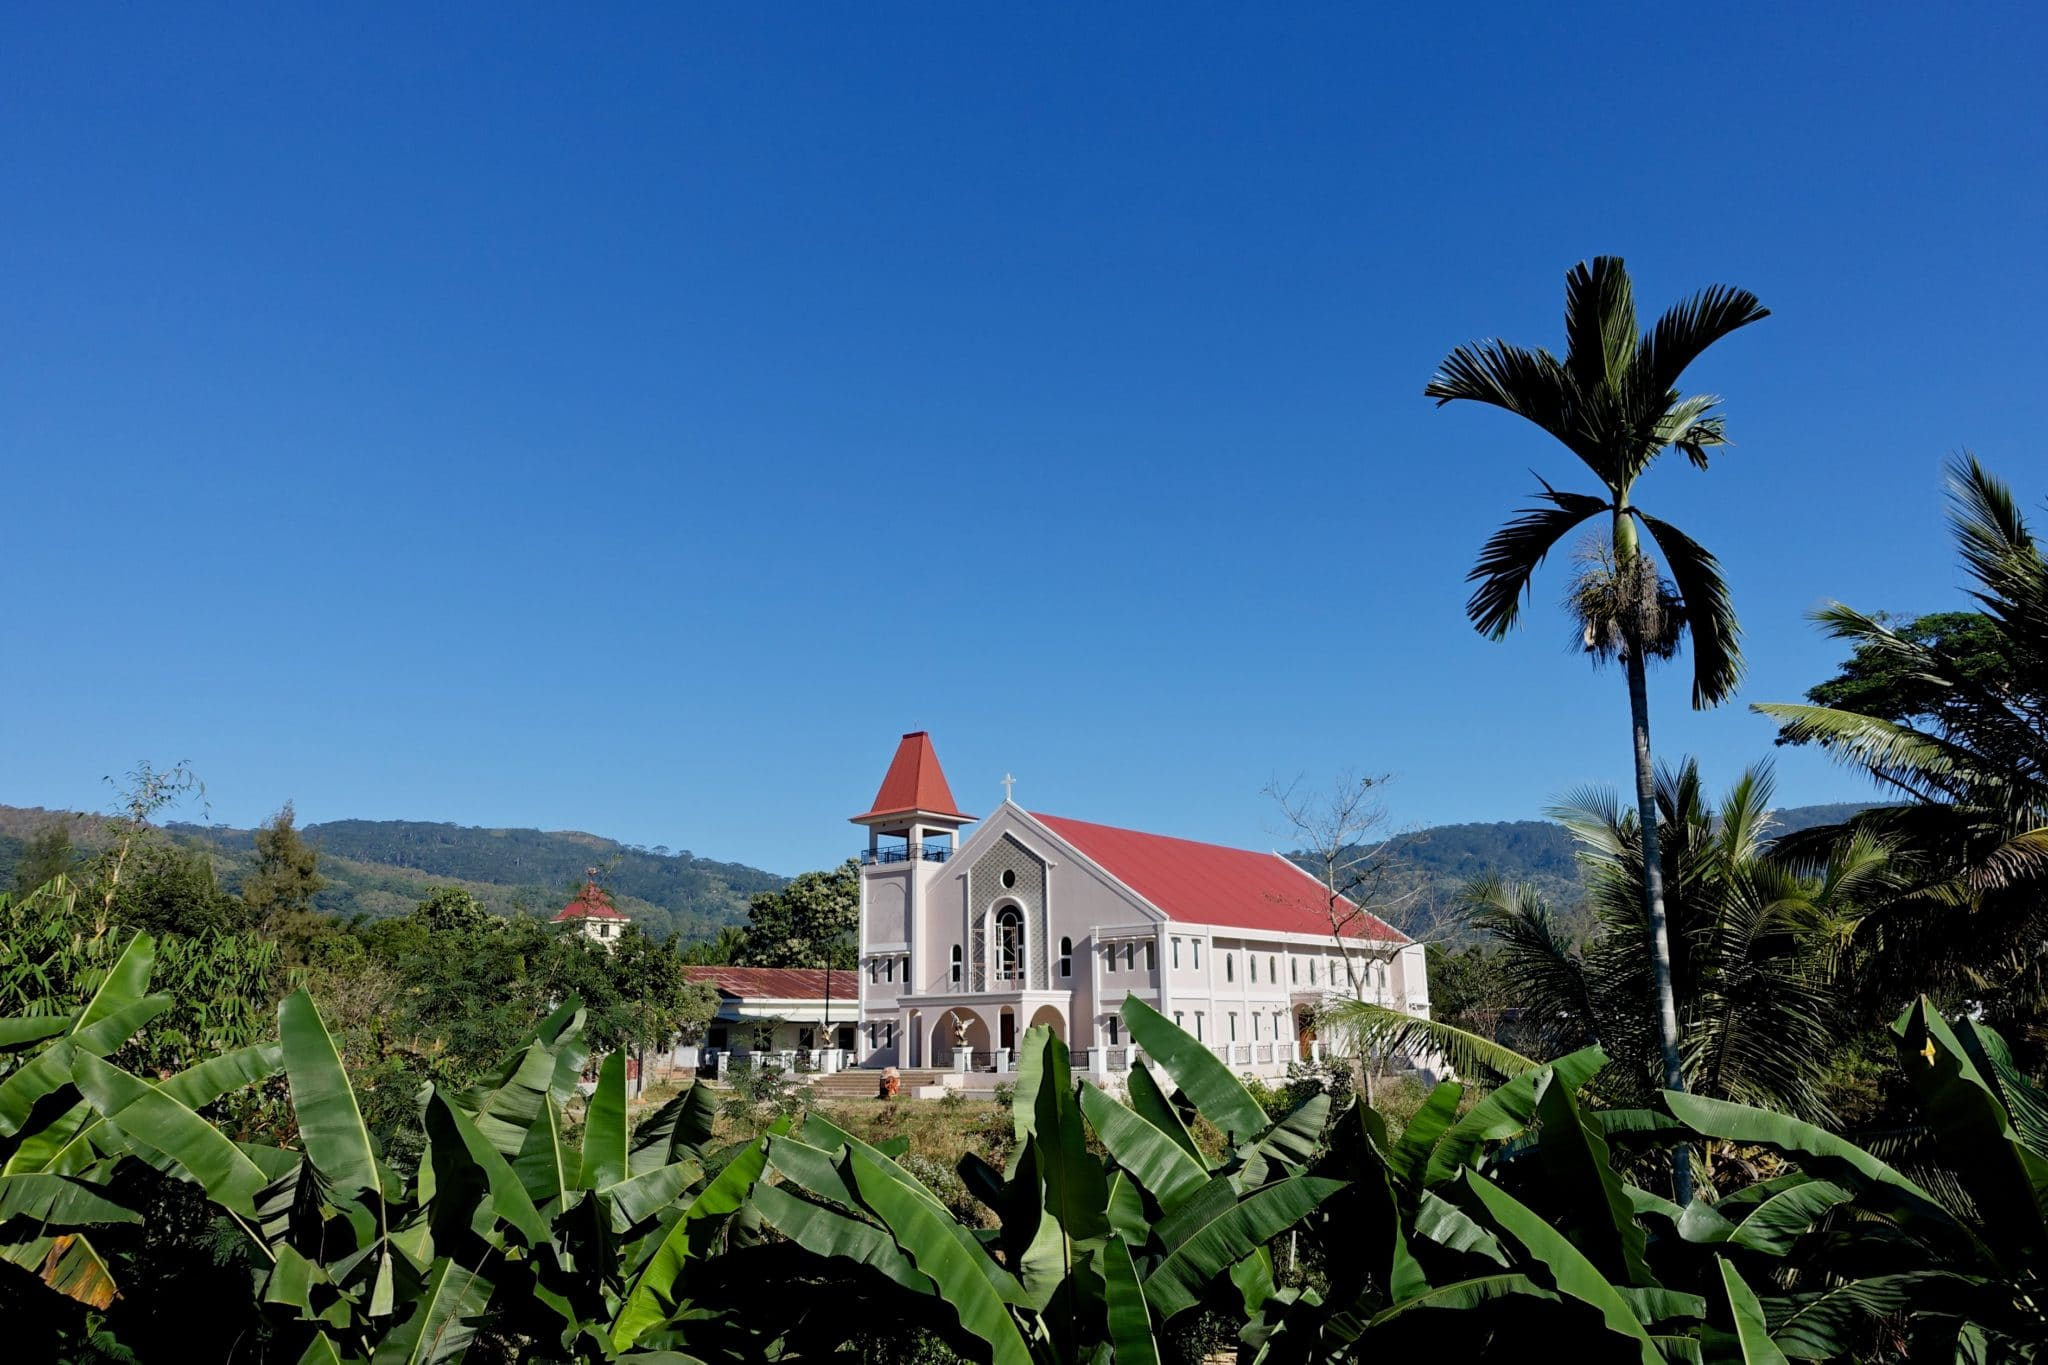 The new Railaco Parish church of Our Lady of Fatima is to be blessed and opened by the Bishop of Dili, His Lordship Bishop Virgilio do Carmo da Silva on October 7th this year to welcome the increasing numbers of people coming to Mass. The old church, seen in the background, will be used for much-needed parish Community activities.